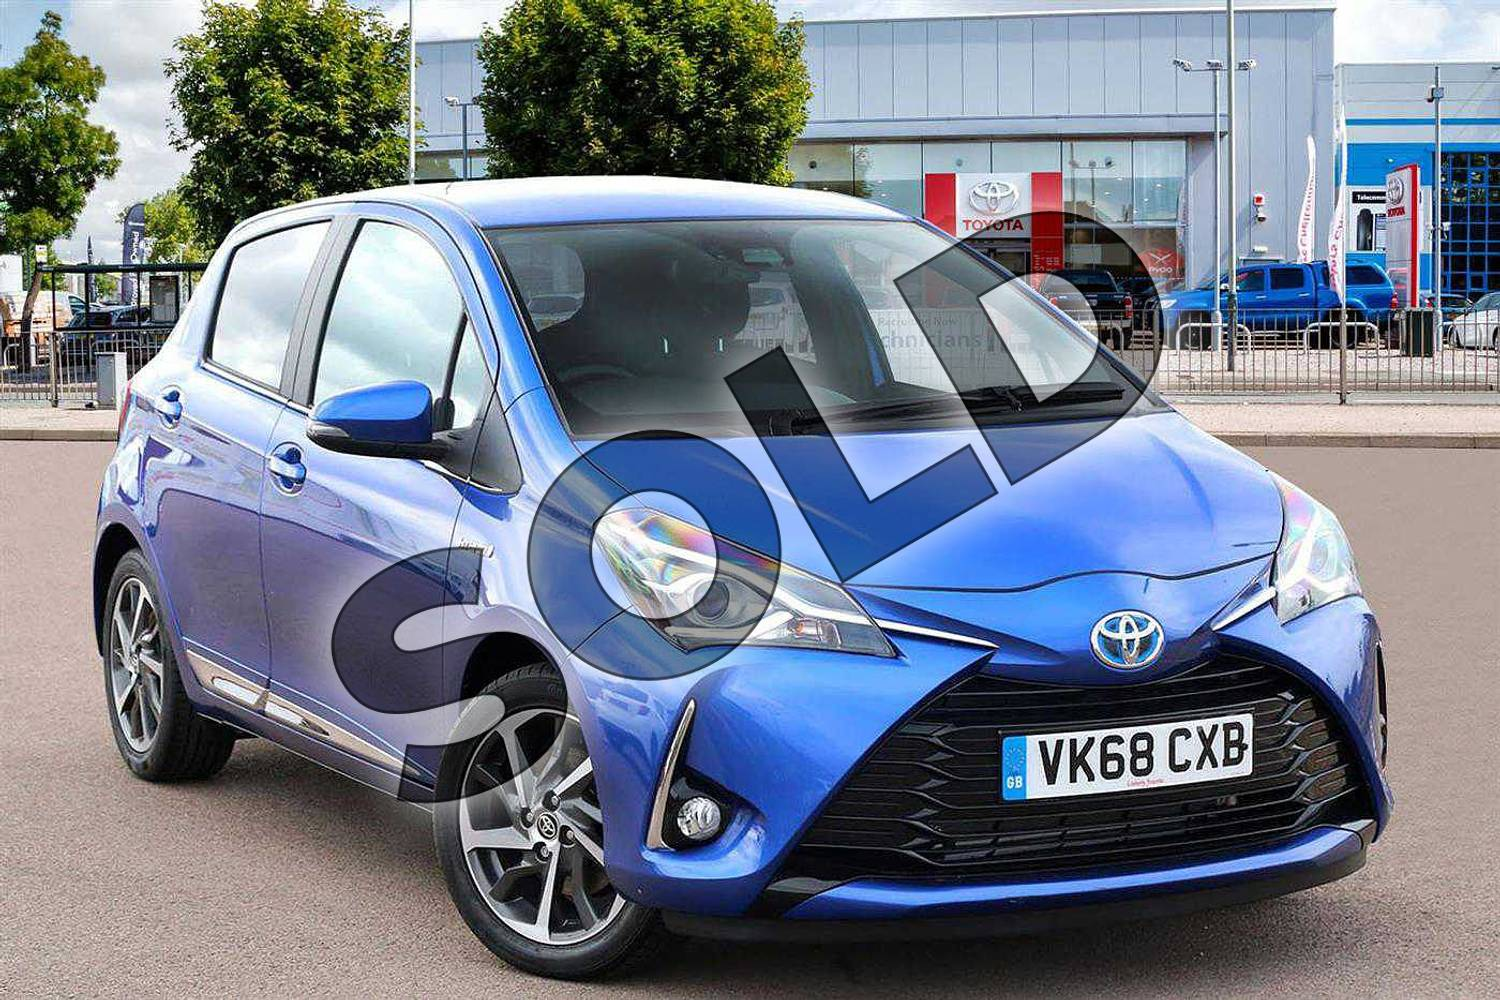 dac02e7a04 2018 Toyota Yaris Hatchback 1.5 VVT-i Excel 5dr in Nebula Blue at Listers  Toyota